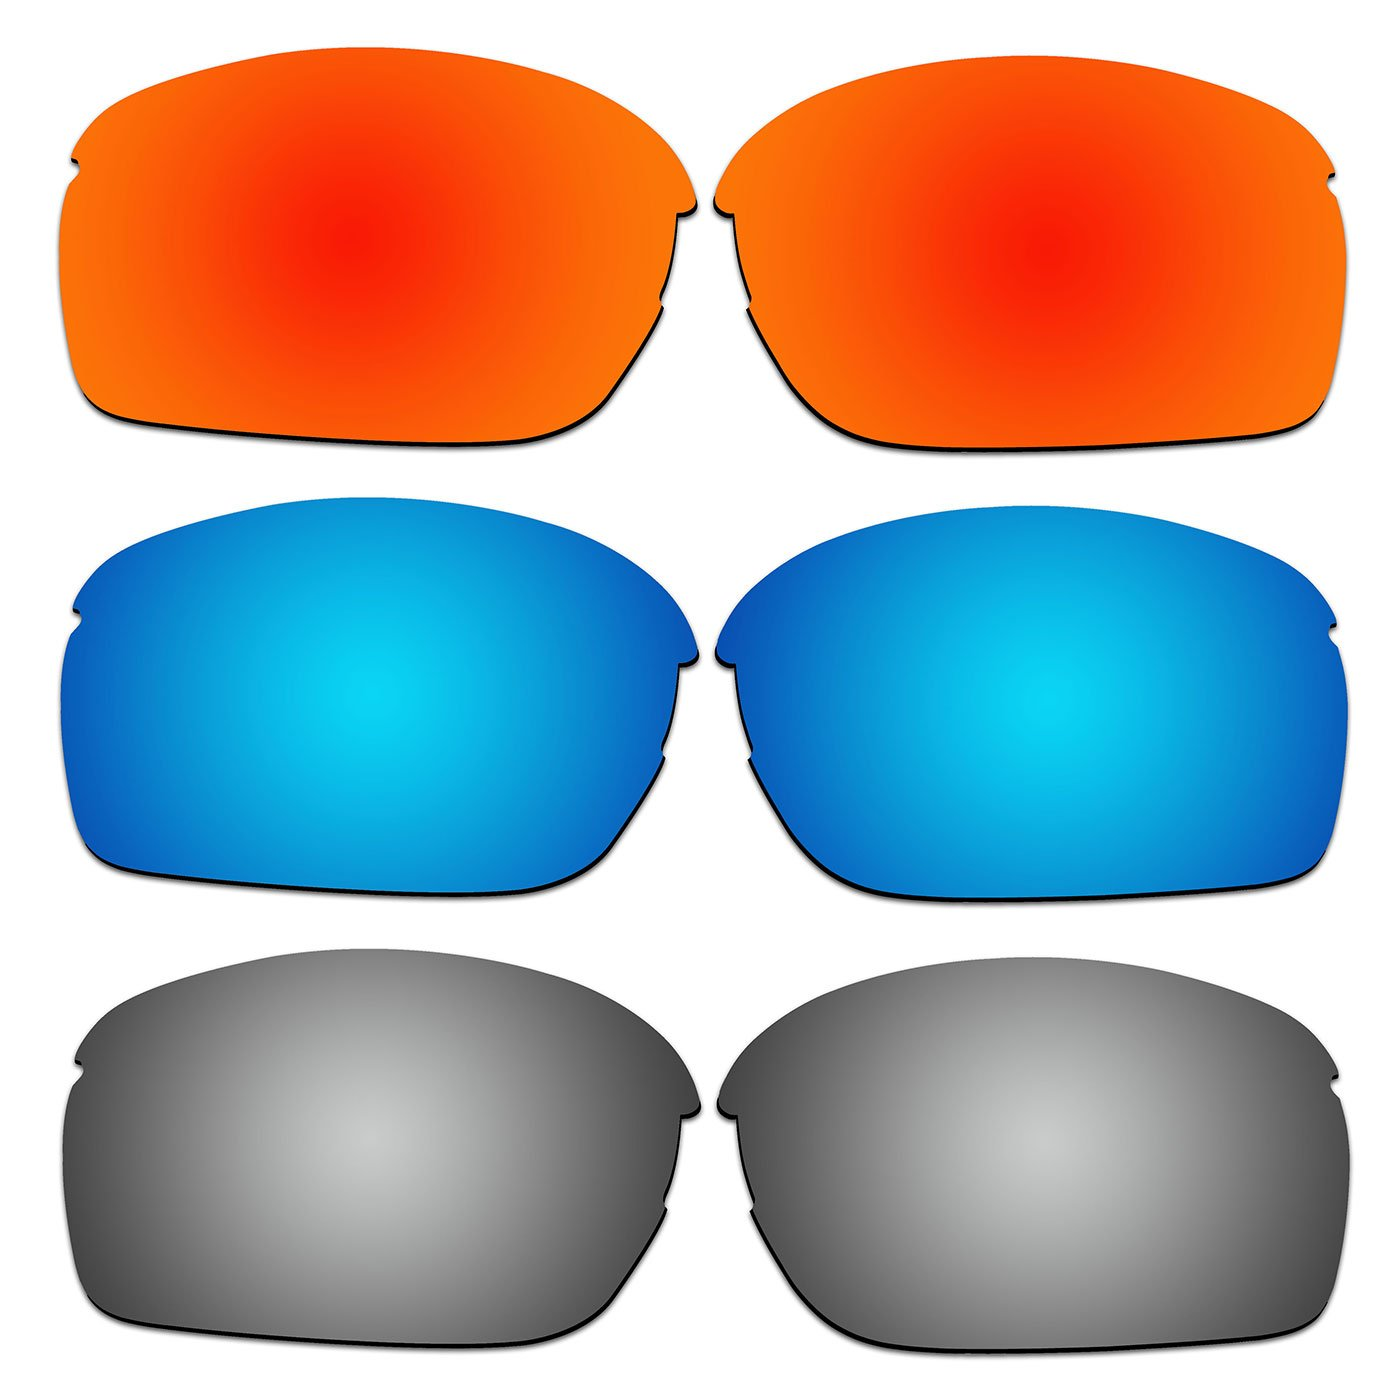 2a905b03811 Amazon.com   ACOMPATIBLE 3 Pair Replacement Polarized Lenses for Oakley RPM  Squared Sunglasses OO9205 Pack P3   Sports   Outdoors